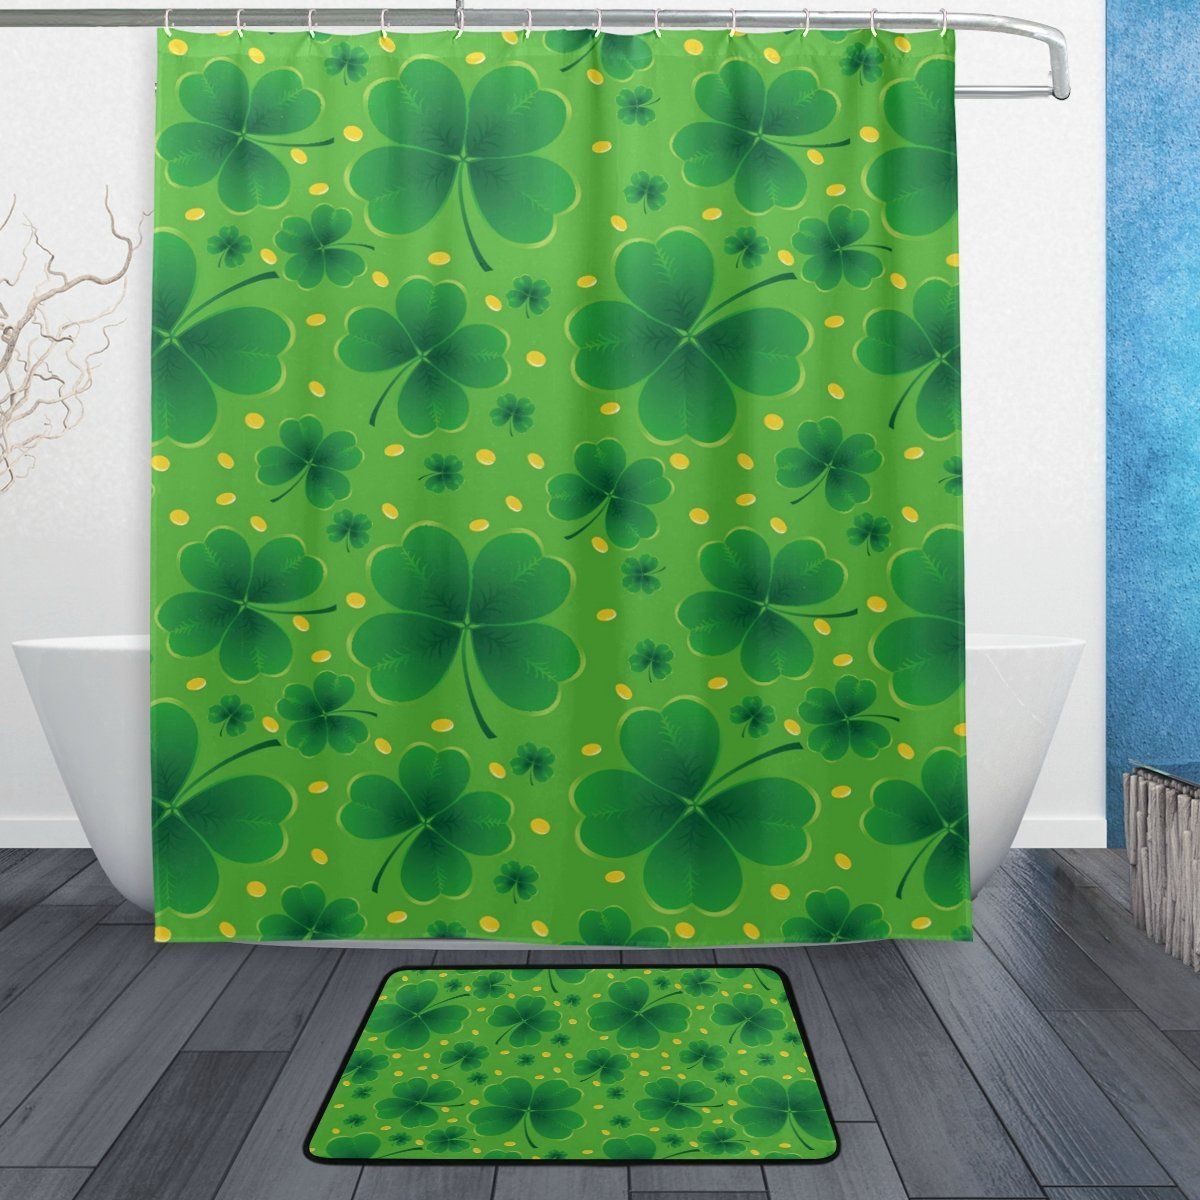 Saint Patricks Day Shower Curtain and Mat Set, Lucky Clover Spring Green Leaf Waterproof ...